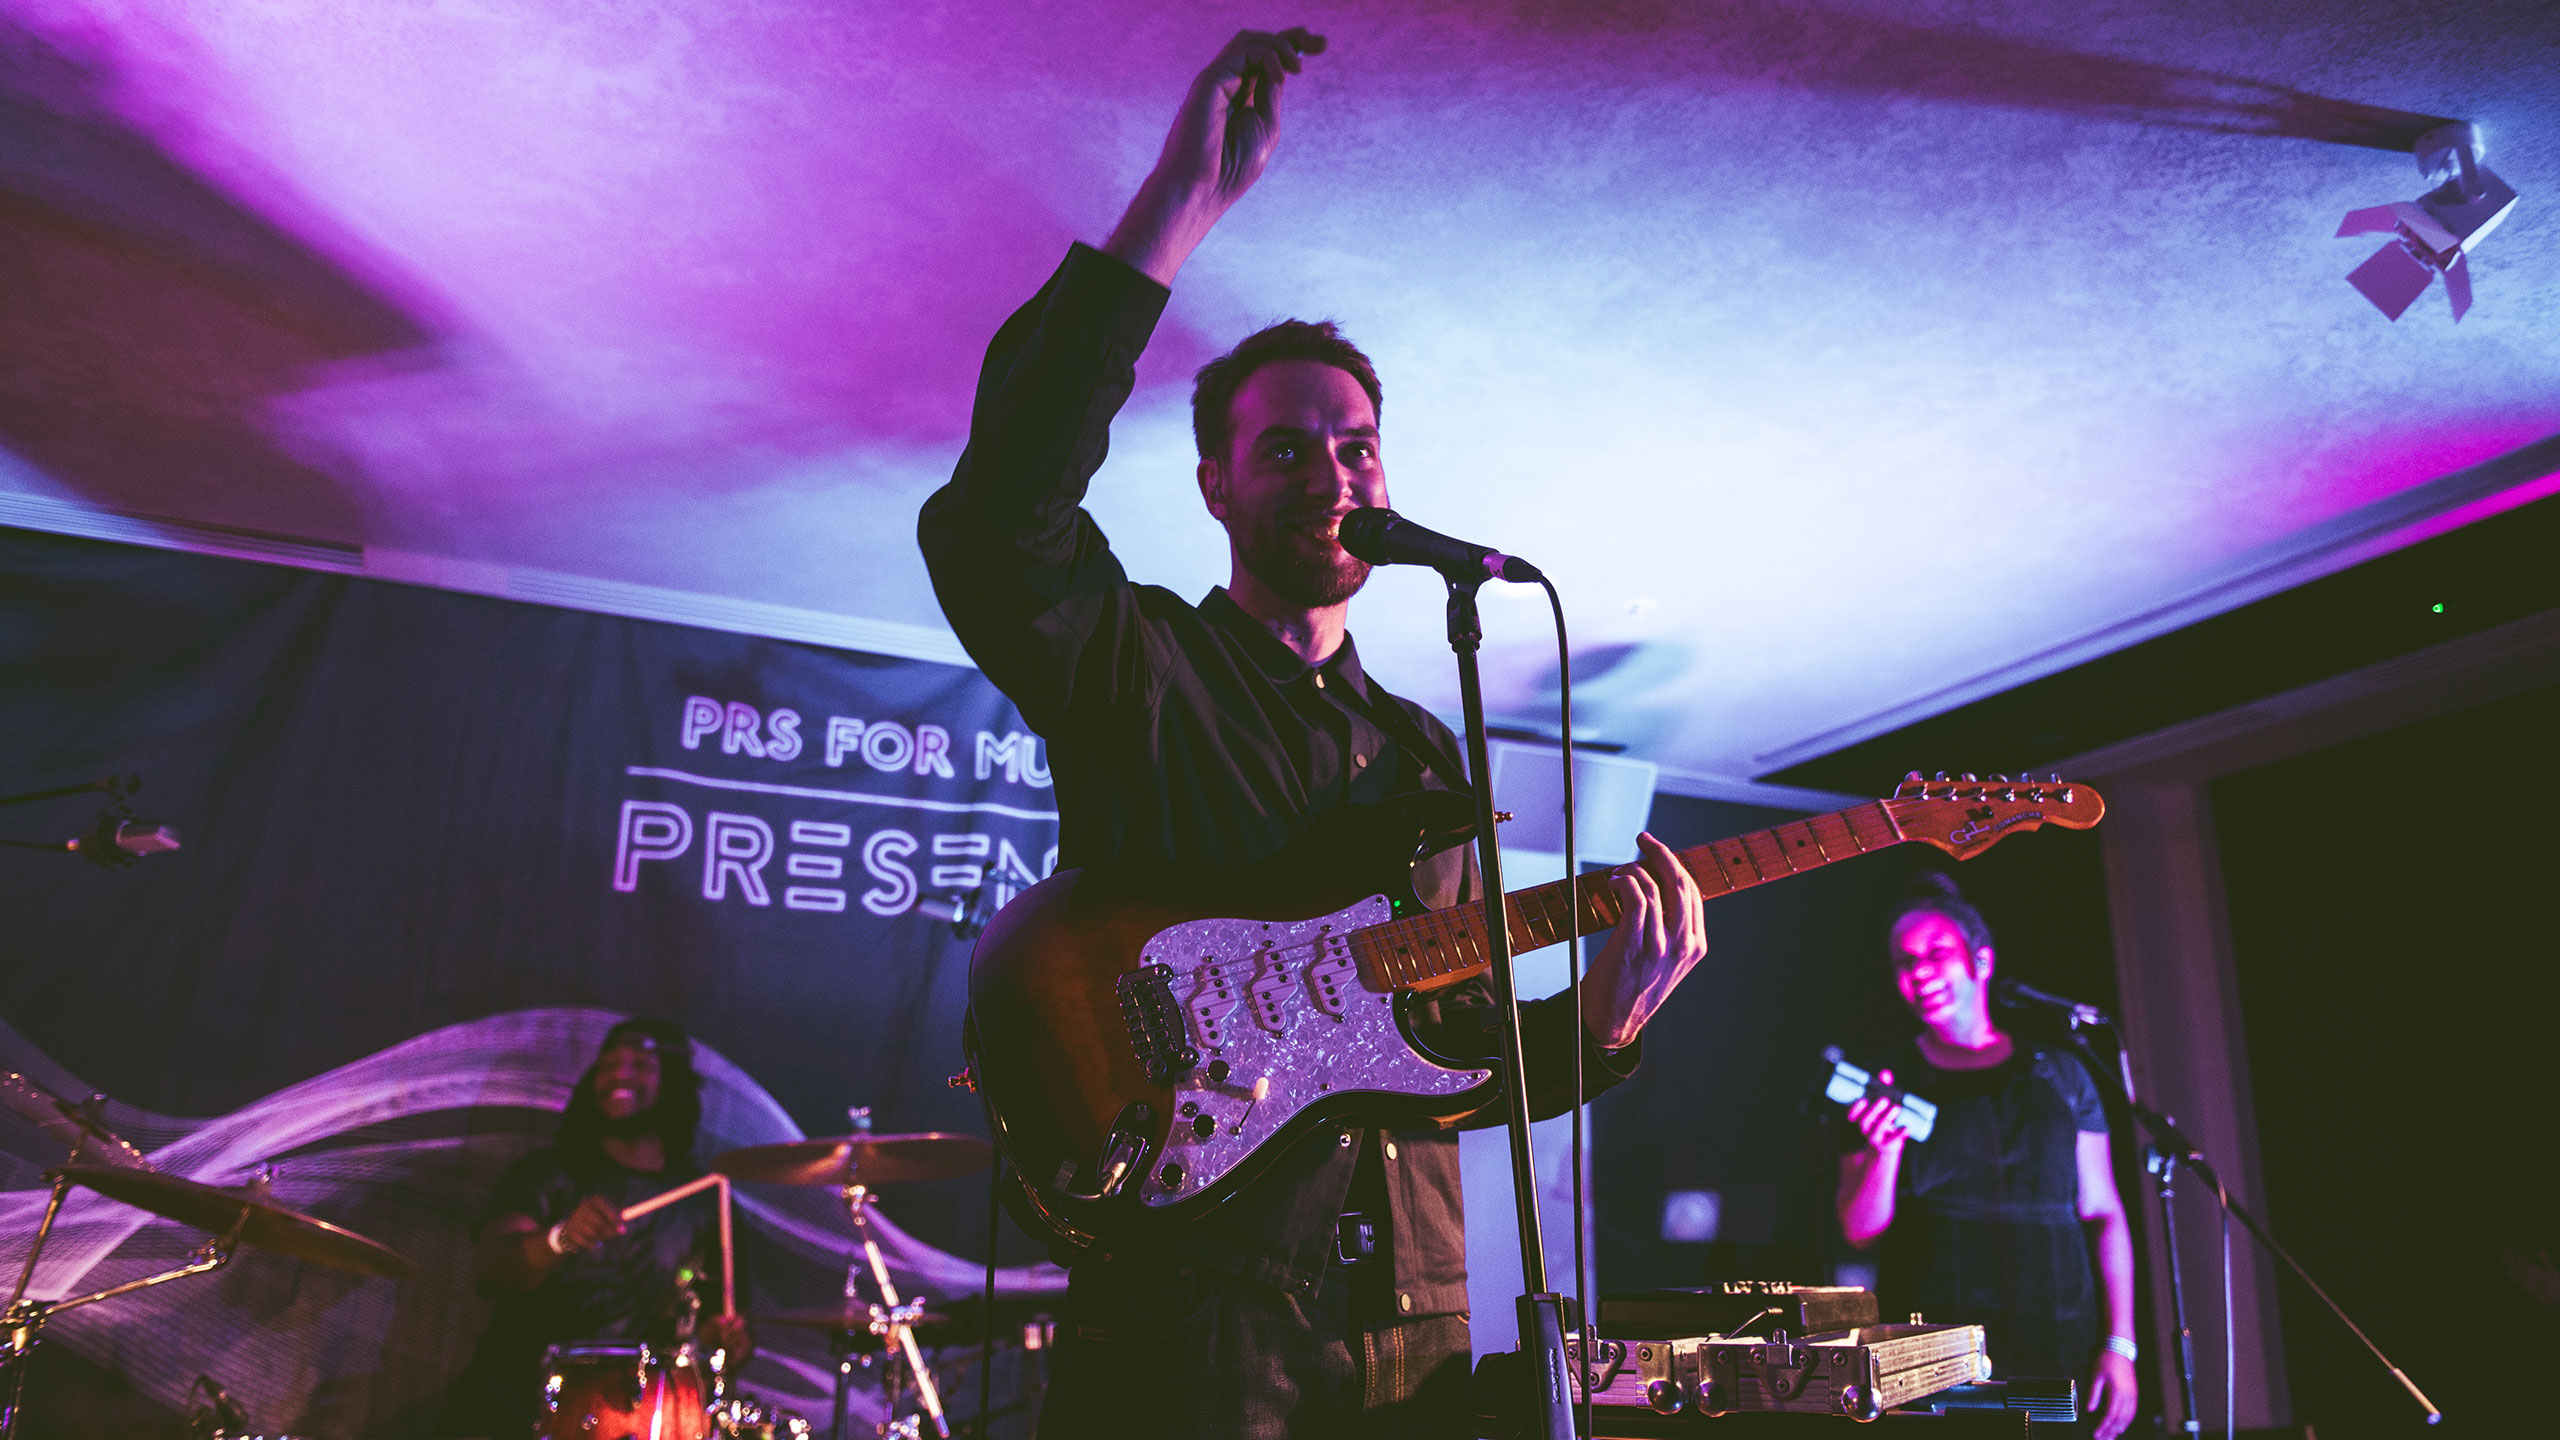 Honne's Andy Clutterbuck raises his arm as he sings and plays guitar at PRS Presents